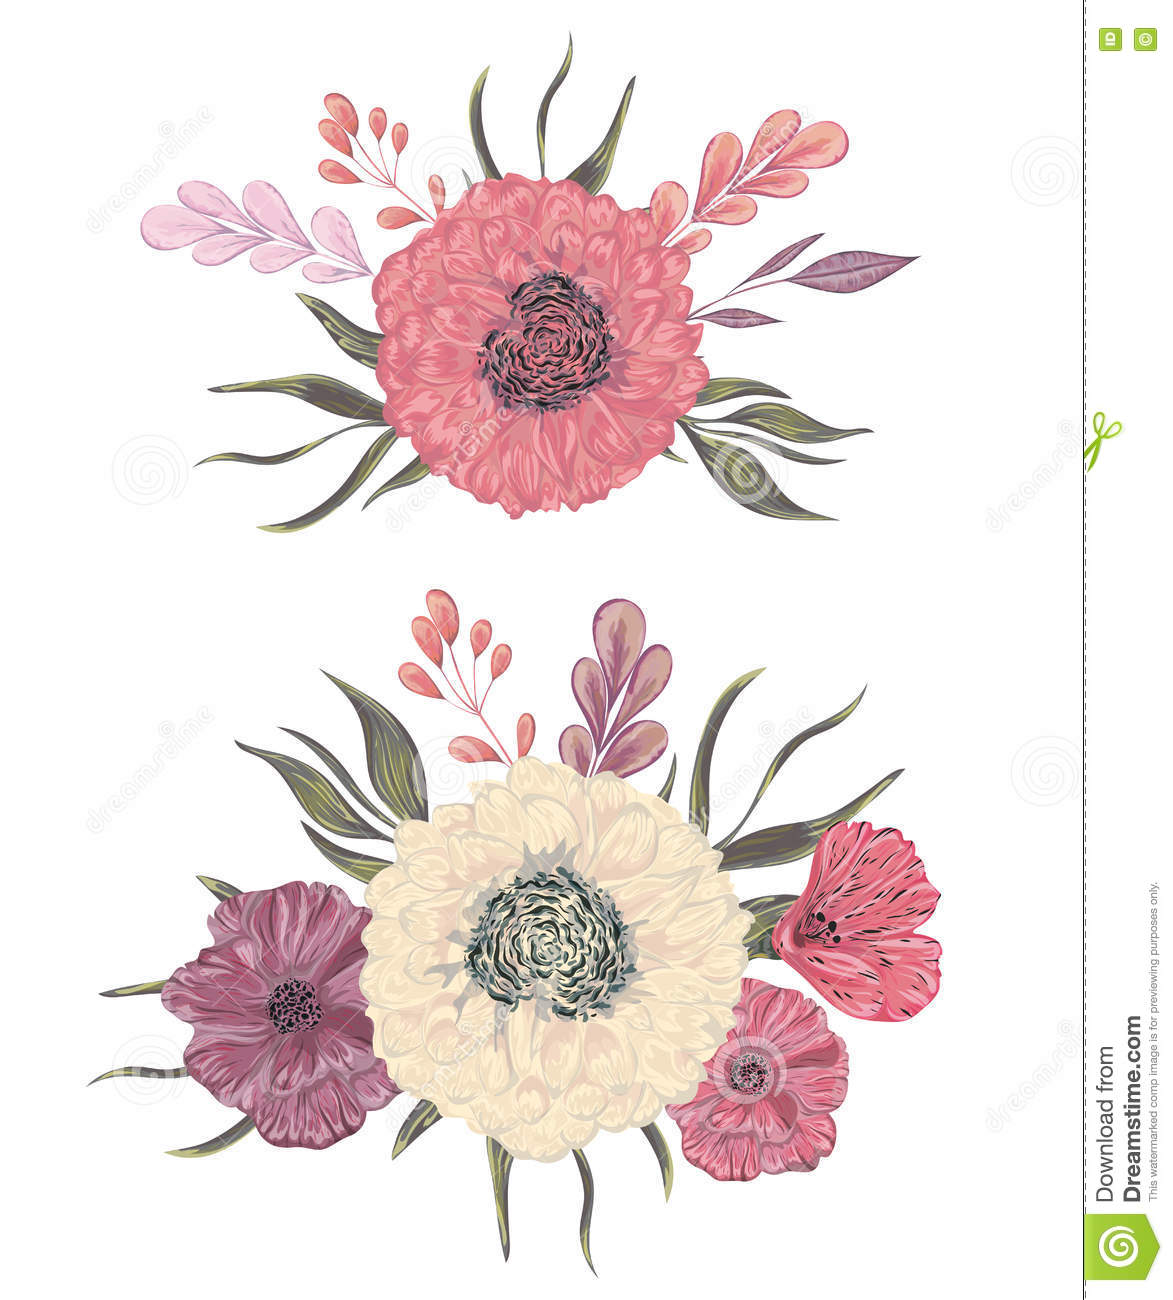 Collection decorative design elements for wedding invitations and collection decorative design elements for wedding invitations and birthday cards flowers leaves and buds izmirmasajfo